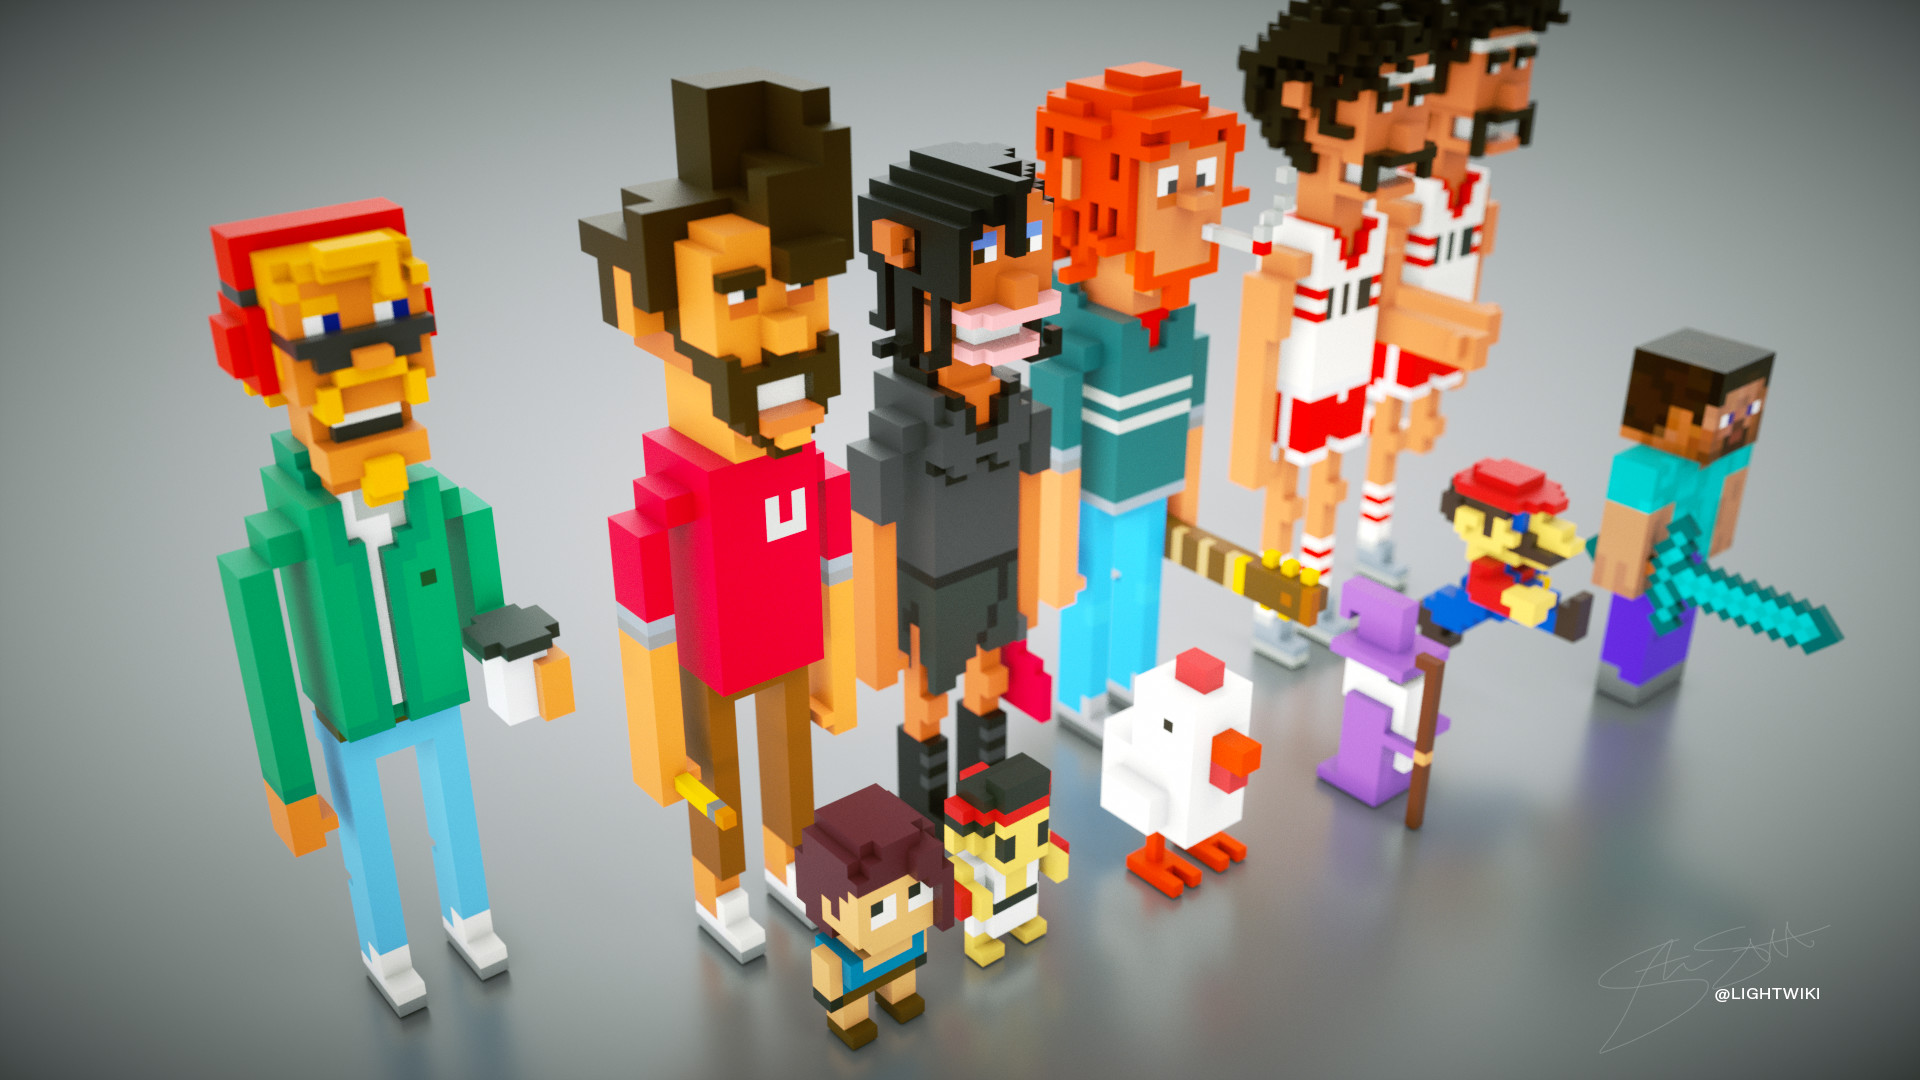 ArtStation - Free MagicaVoxel 12 Characters & Scene including OBJ